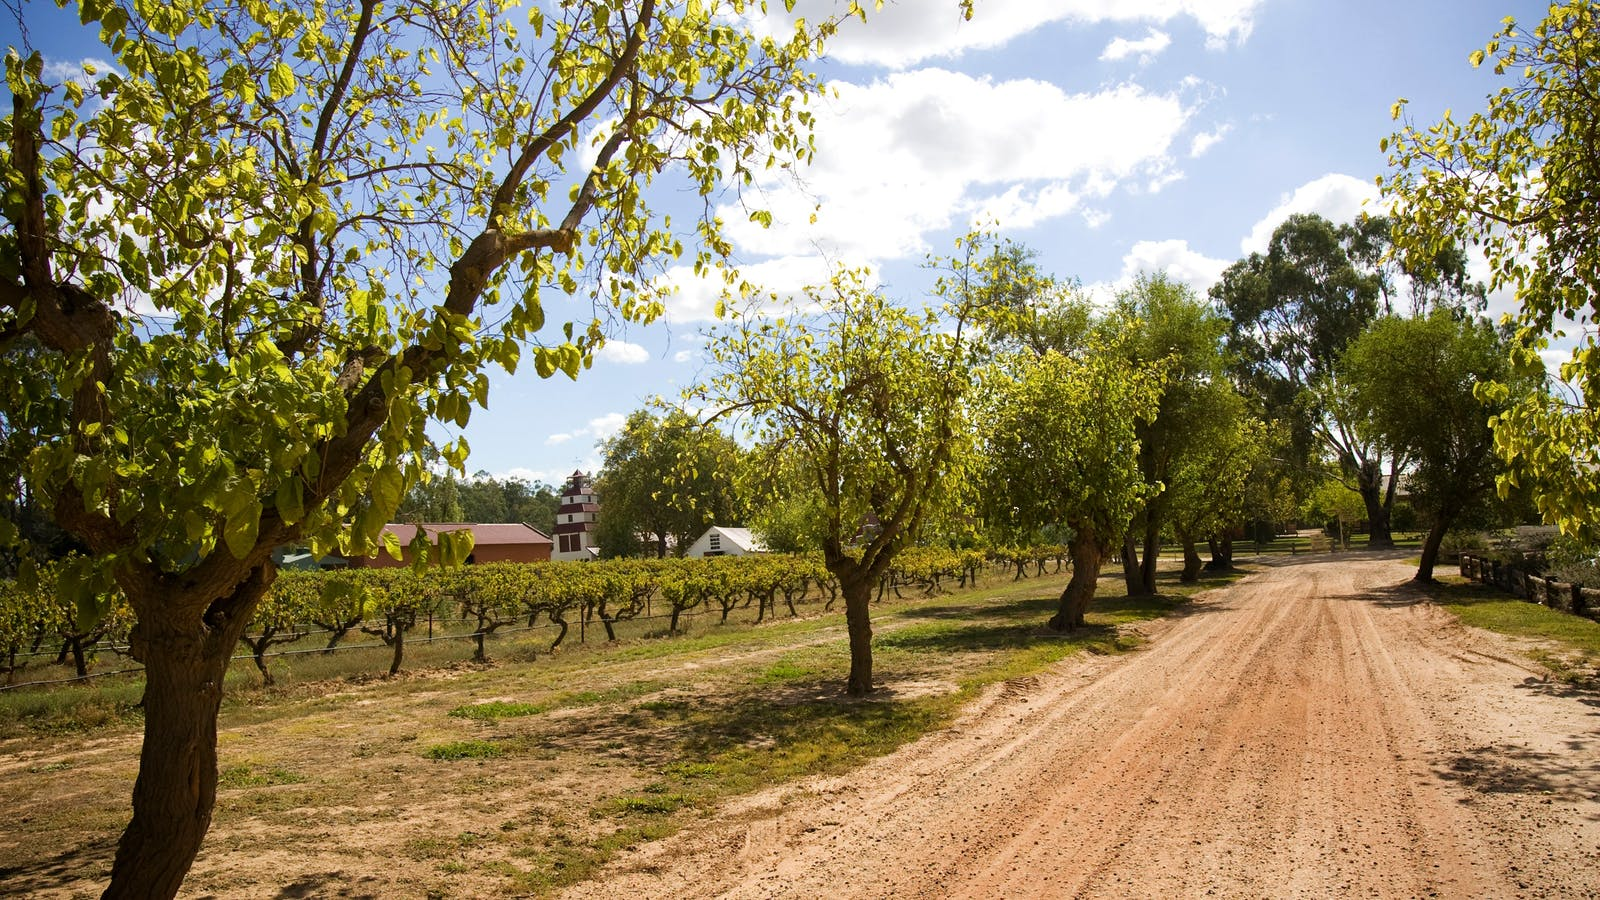 Road leading to the original Winery &  Cellar Yard with 1875 Tower visible